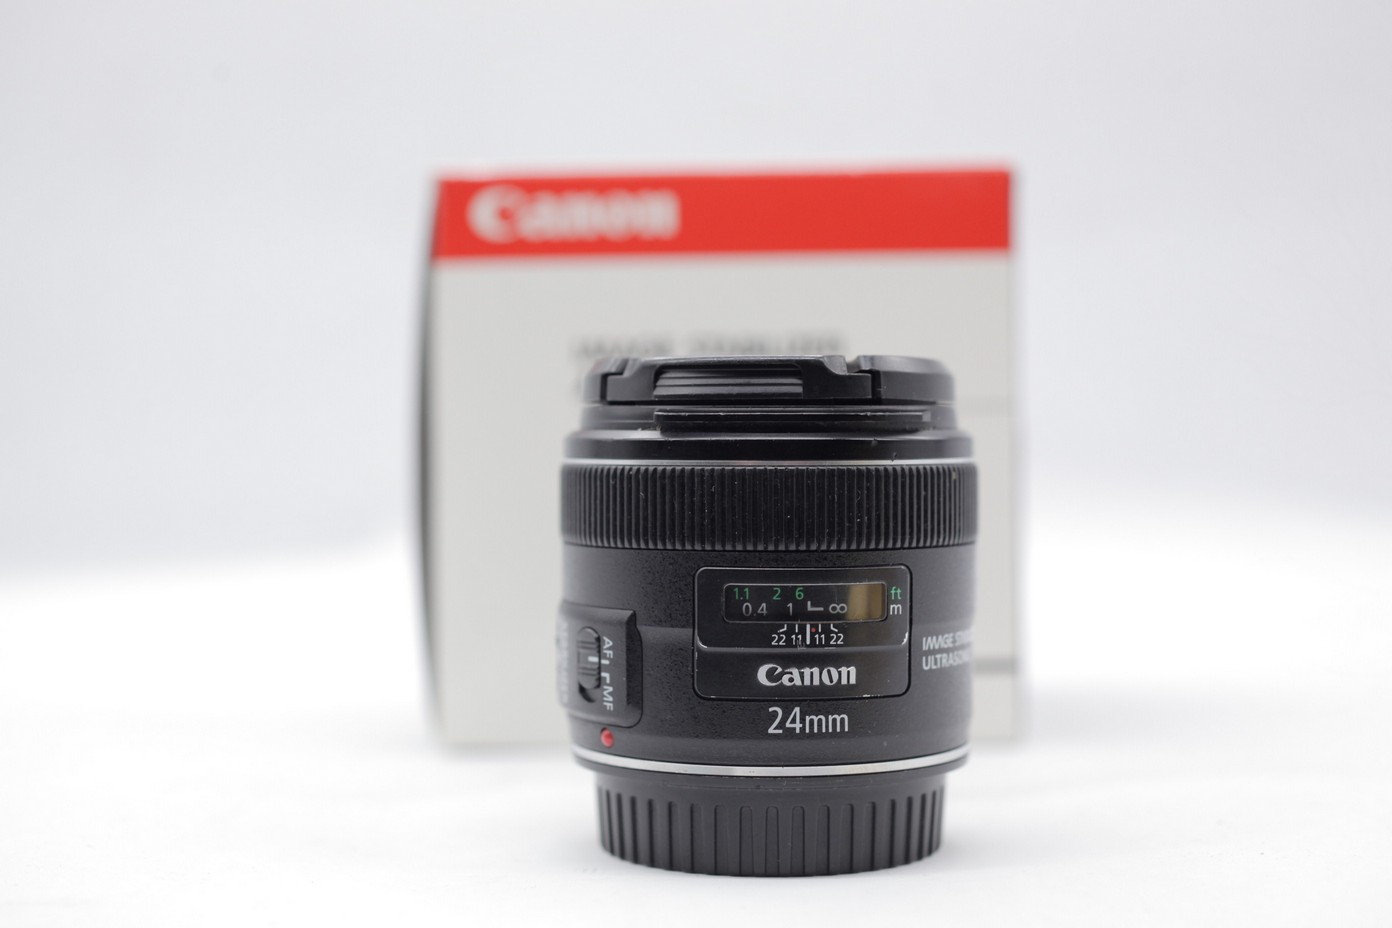 Used - Canon EF 24mm F2.8 IS USM Lens - ( TS - KL )